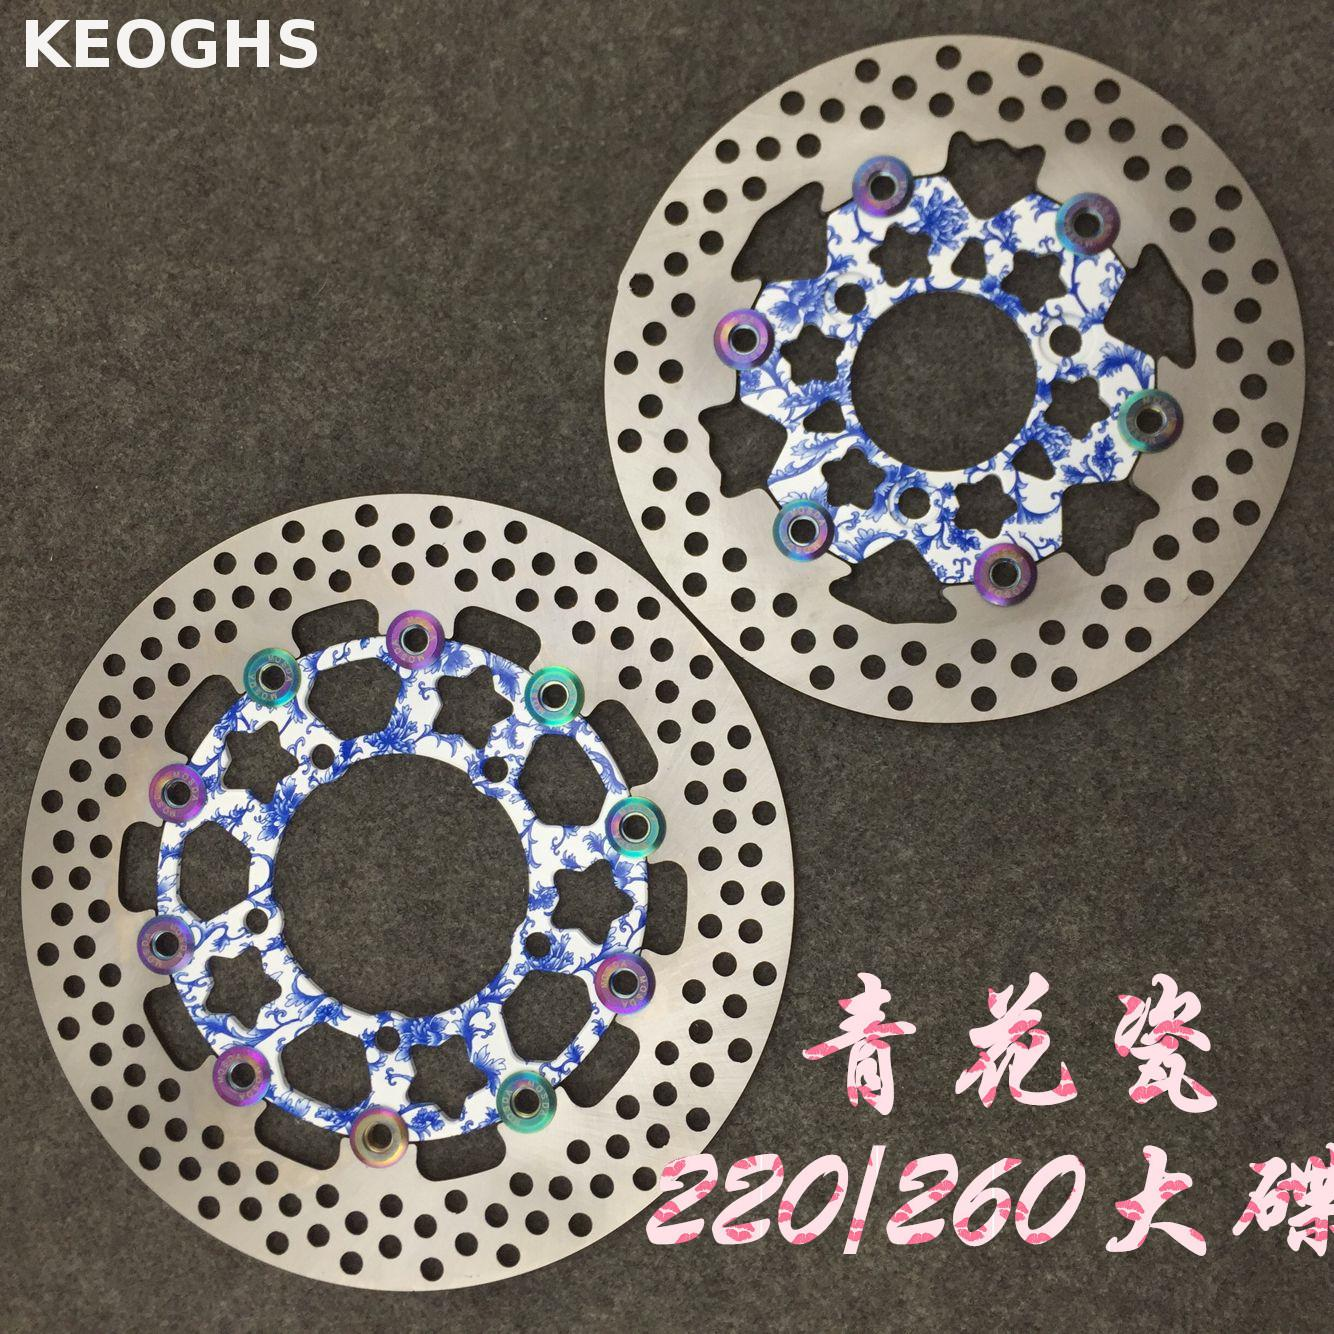 Keoghs Motorcycle Brake Disc 220mm 260mm White And Blue Chinese Style For Yamaha Scooter Cygnus modify keoghs motorcycle rear hydraulic disc brake set for yamaha scooter dirt bike modify 220mm 260mm floating disc with bracket